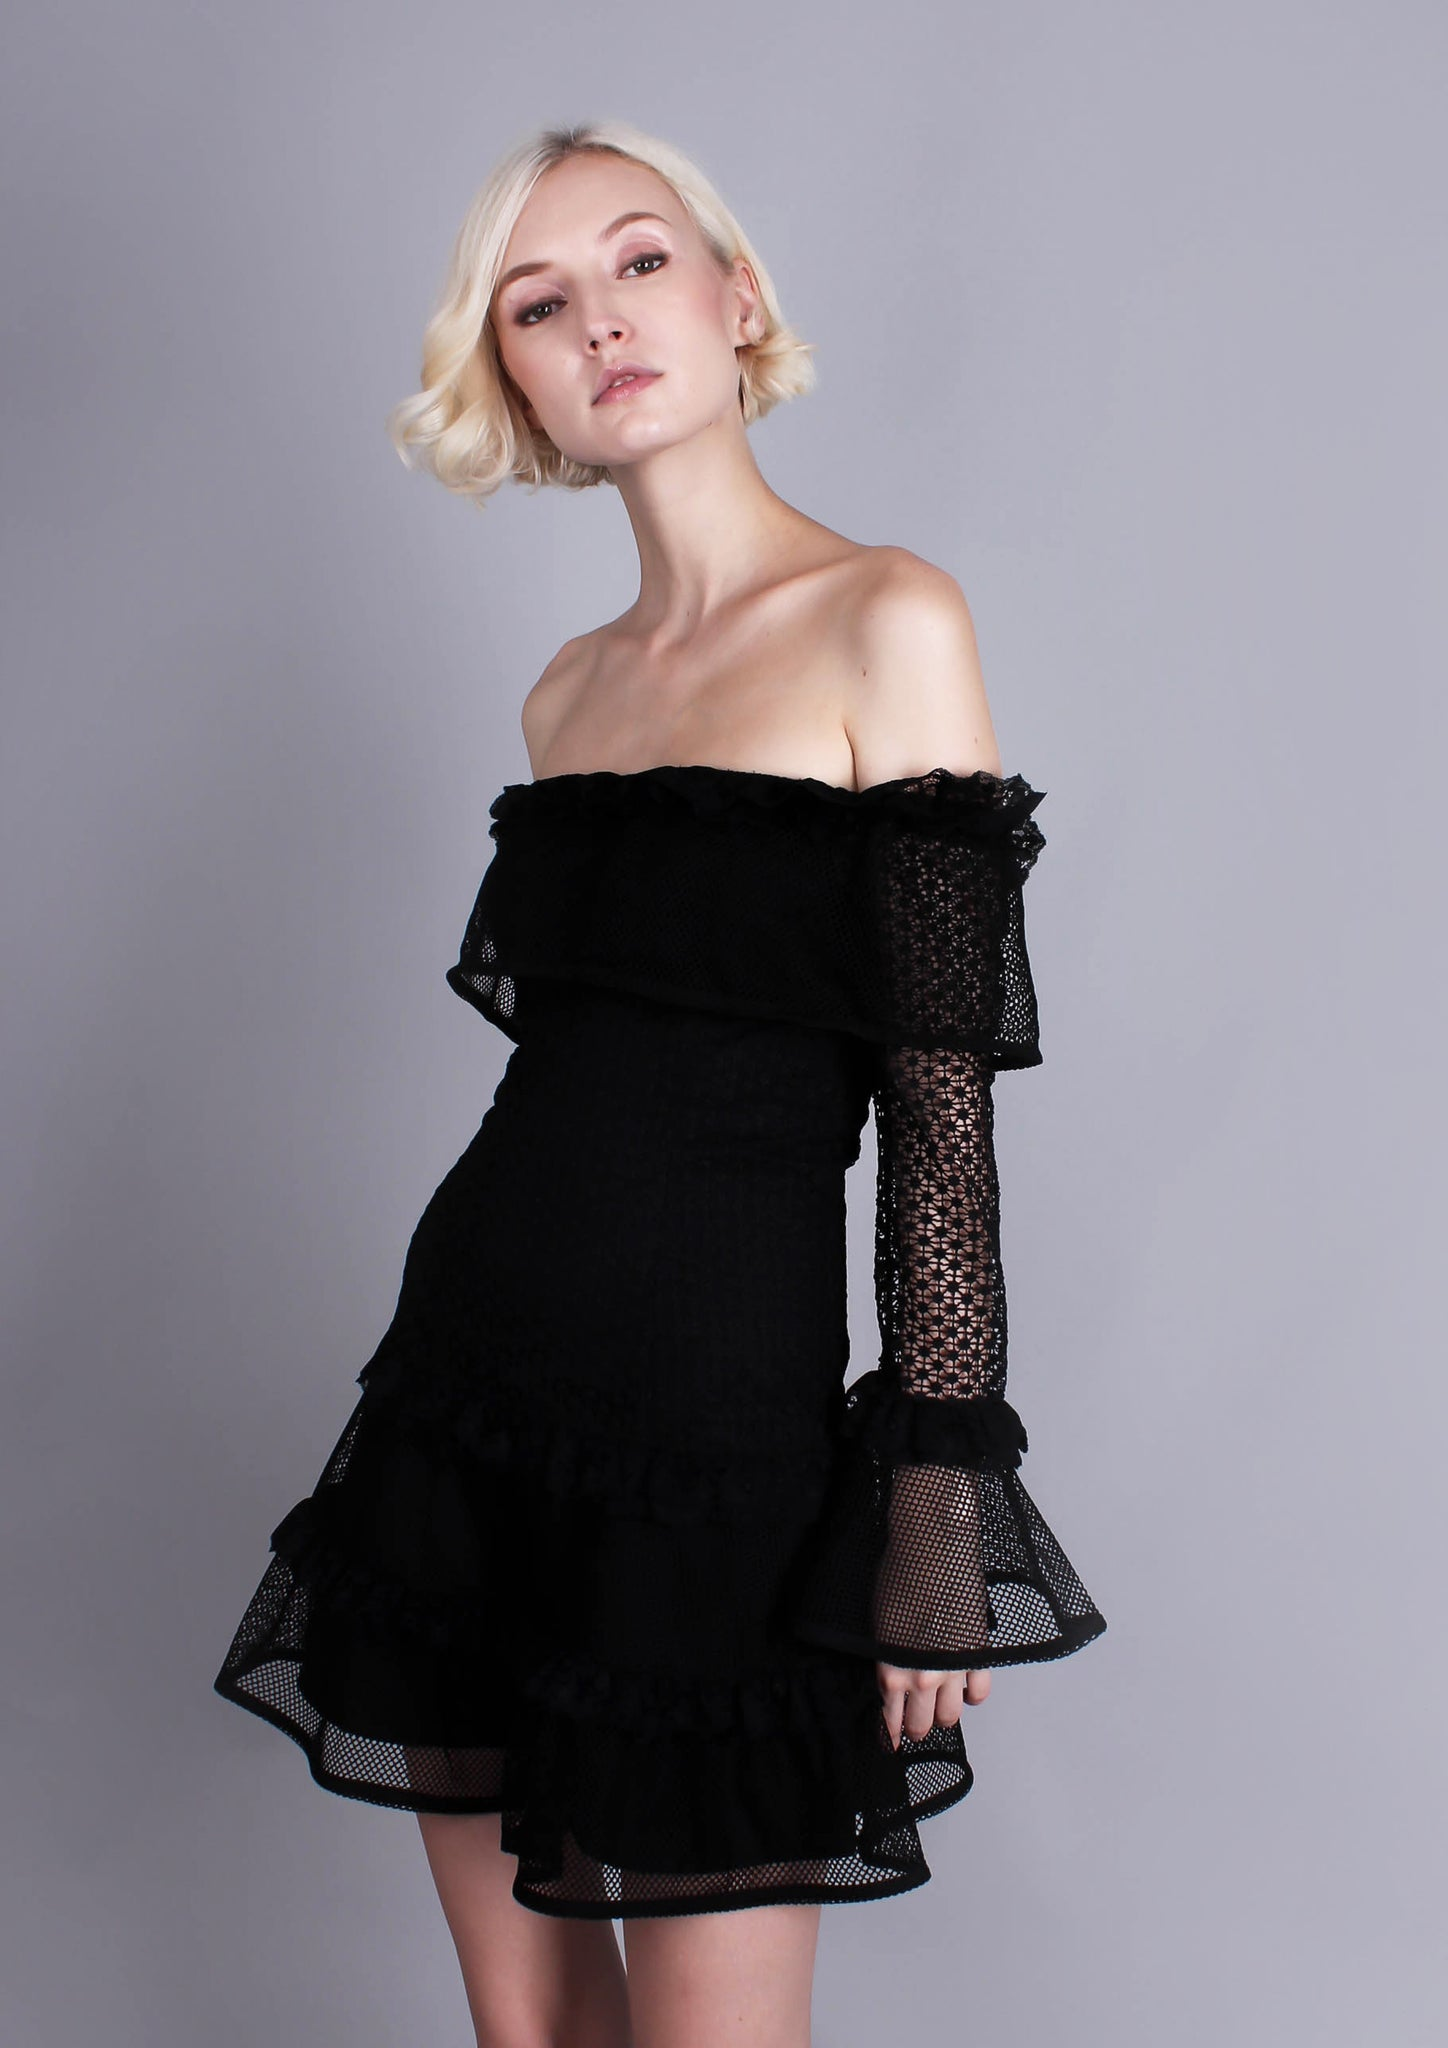 The Mood Swing Dress (Black)